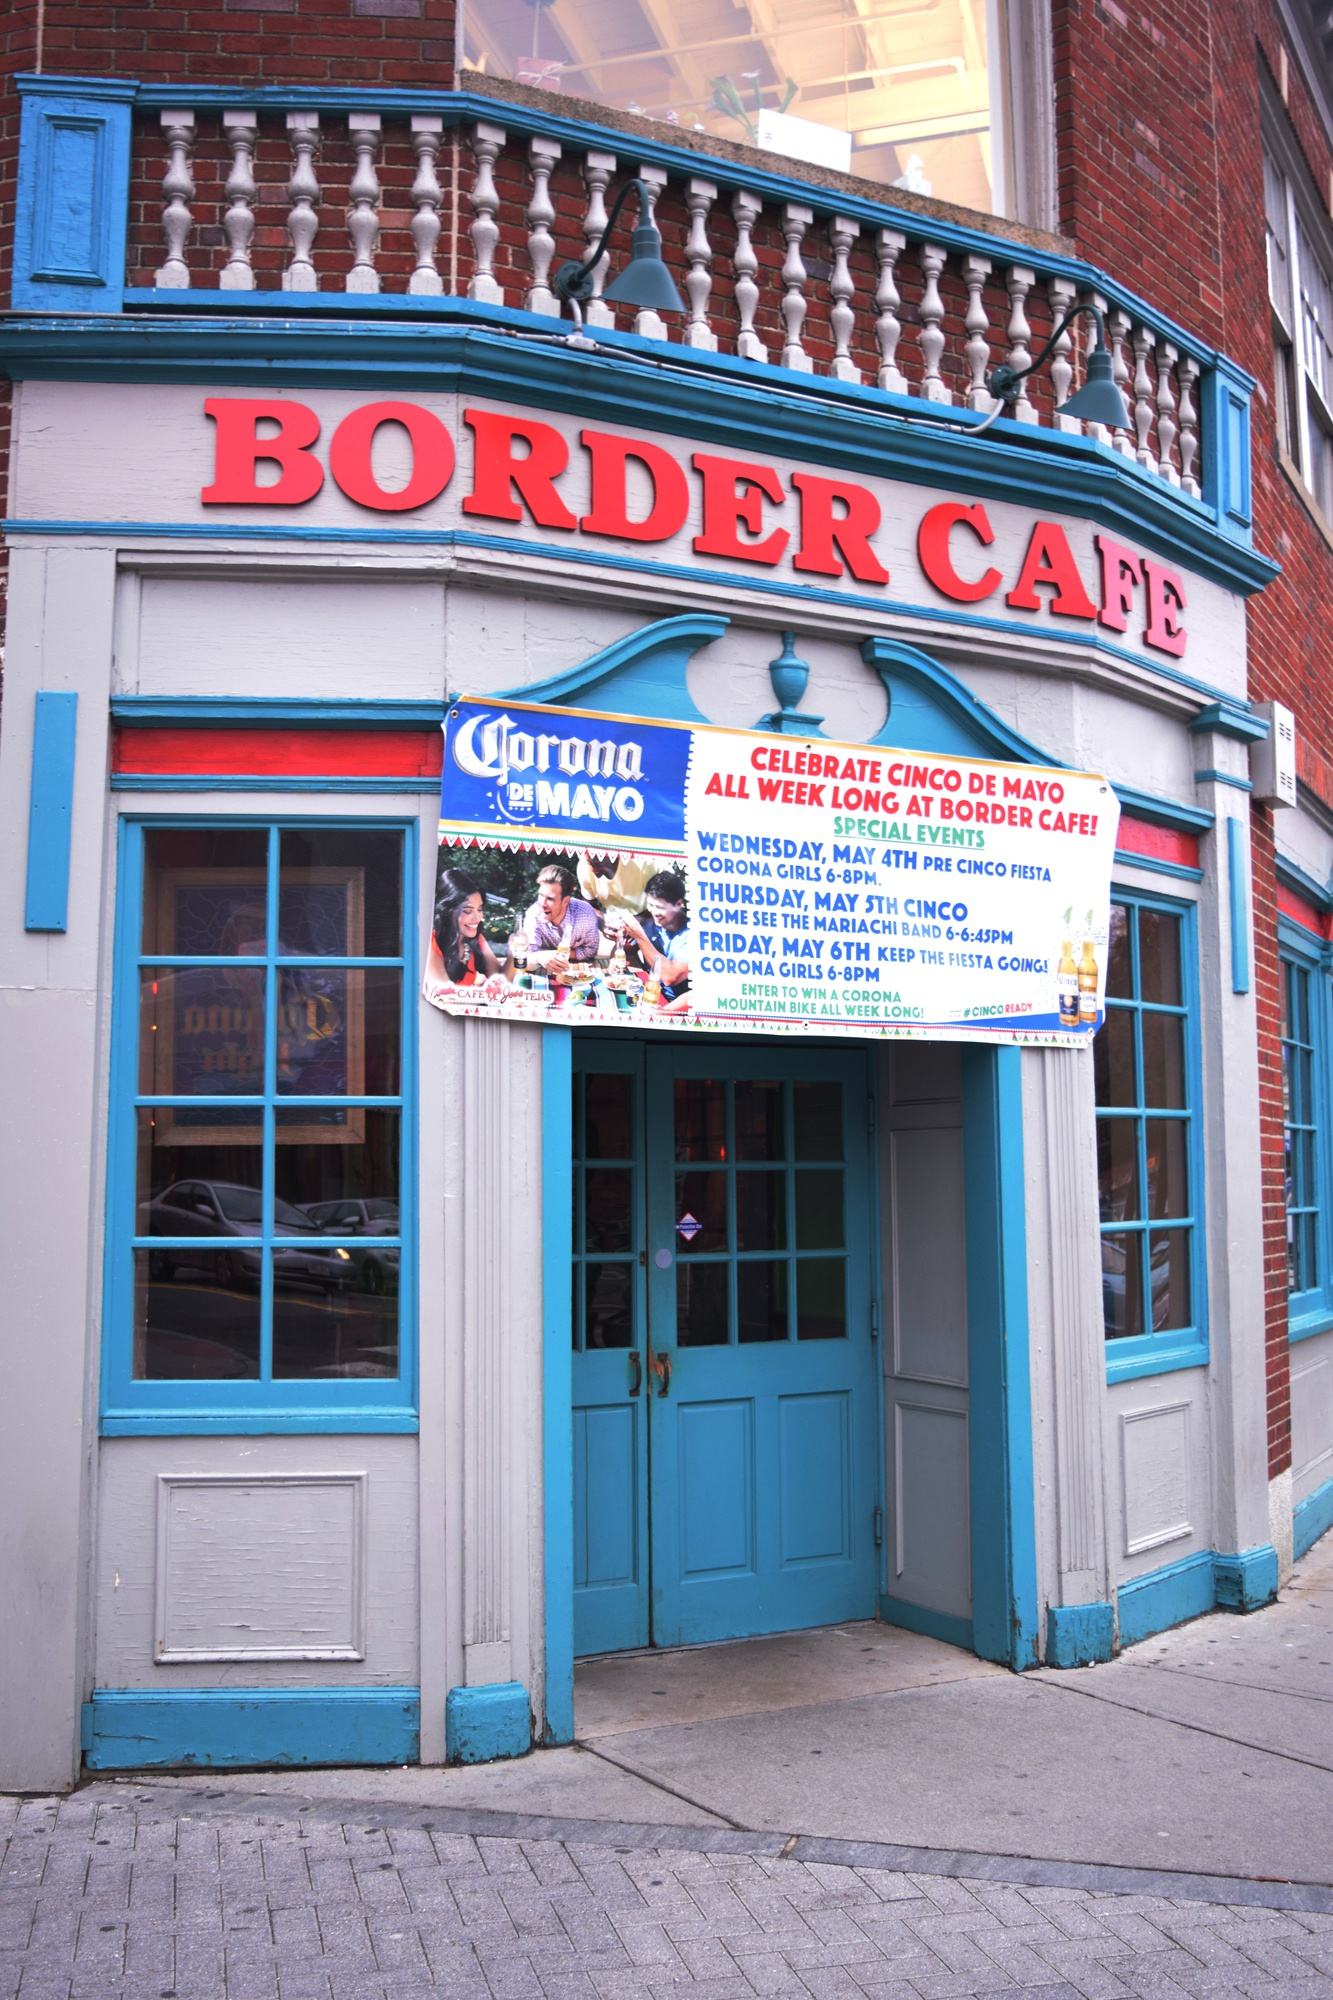 Club 1636, a party sponsored by the Undergraduate Council, will be held in Border Cafe on Wednesday.